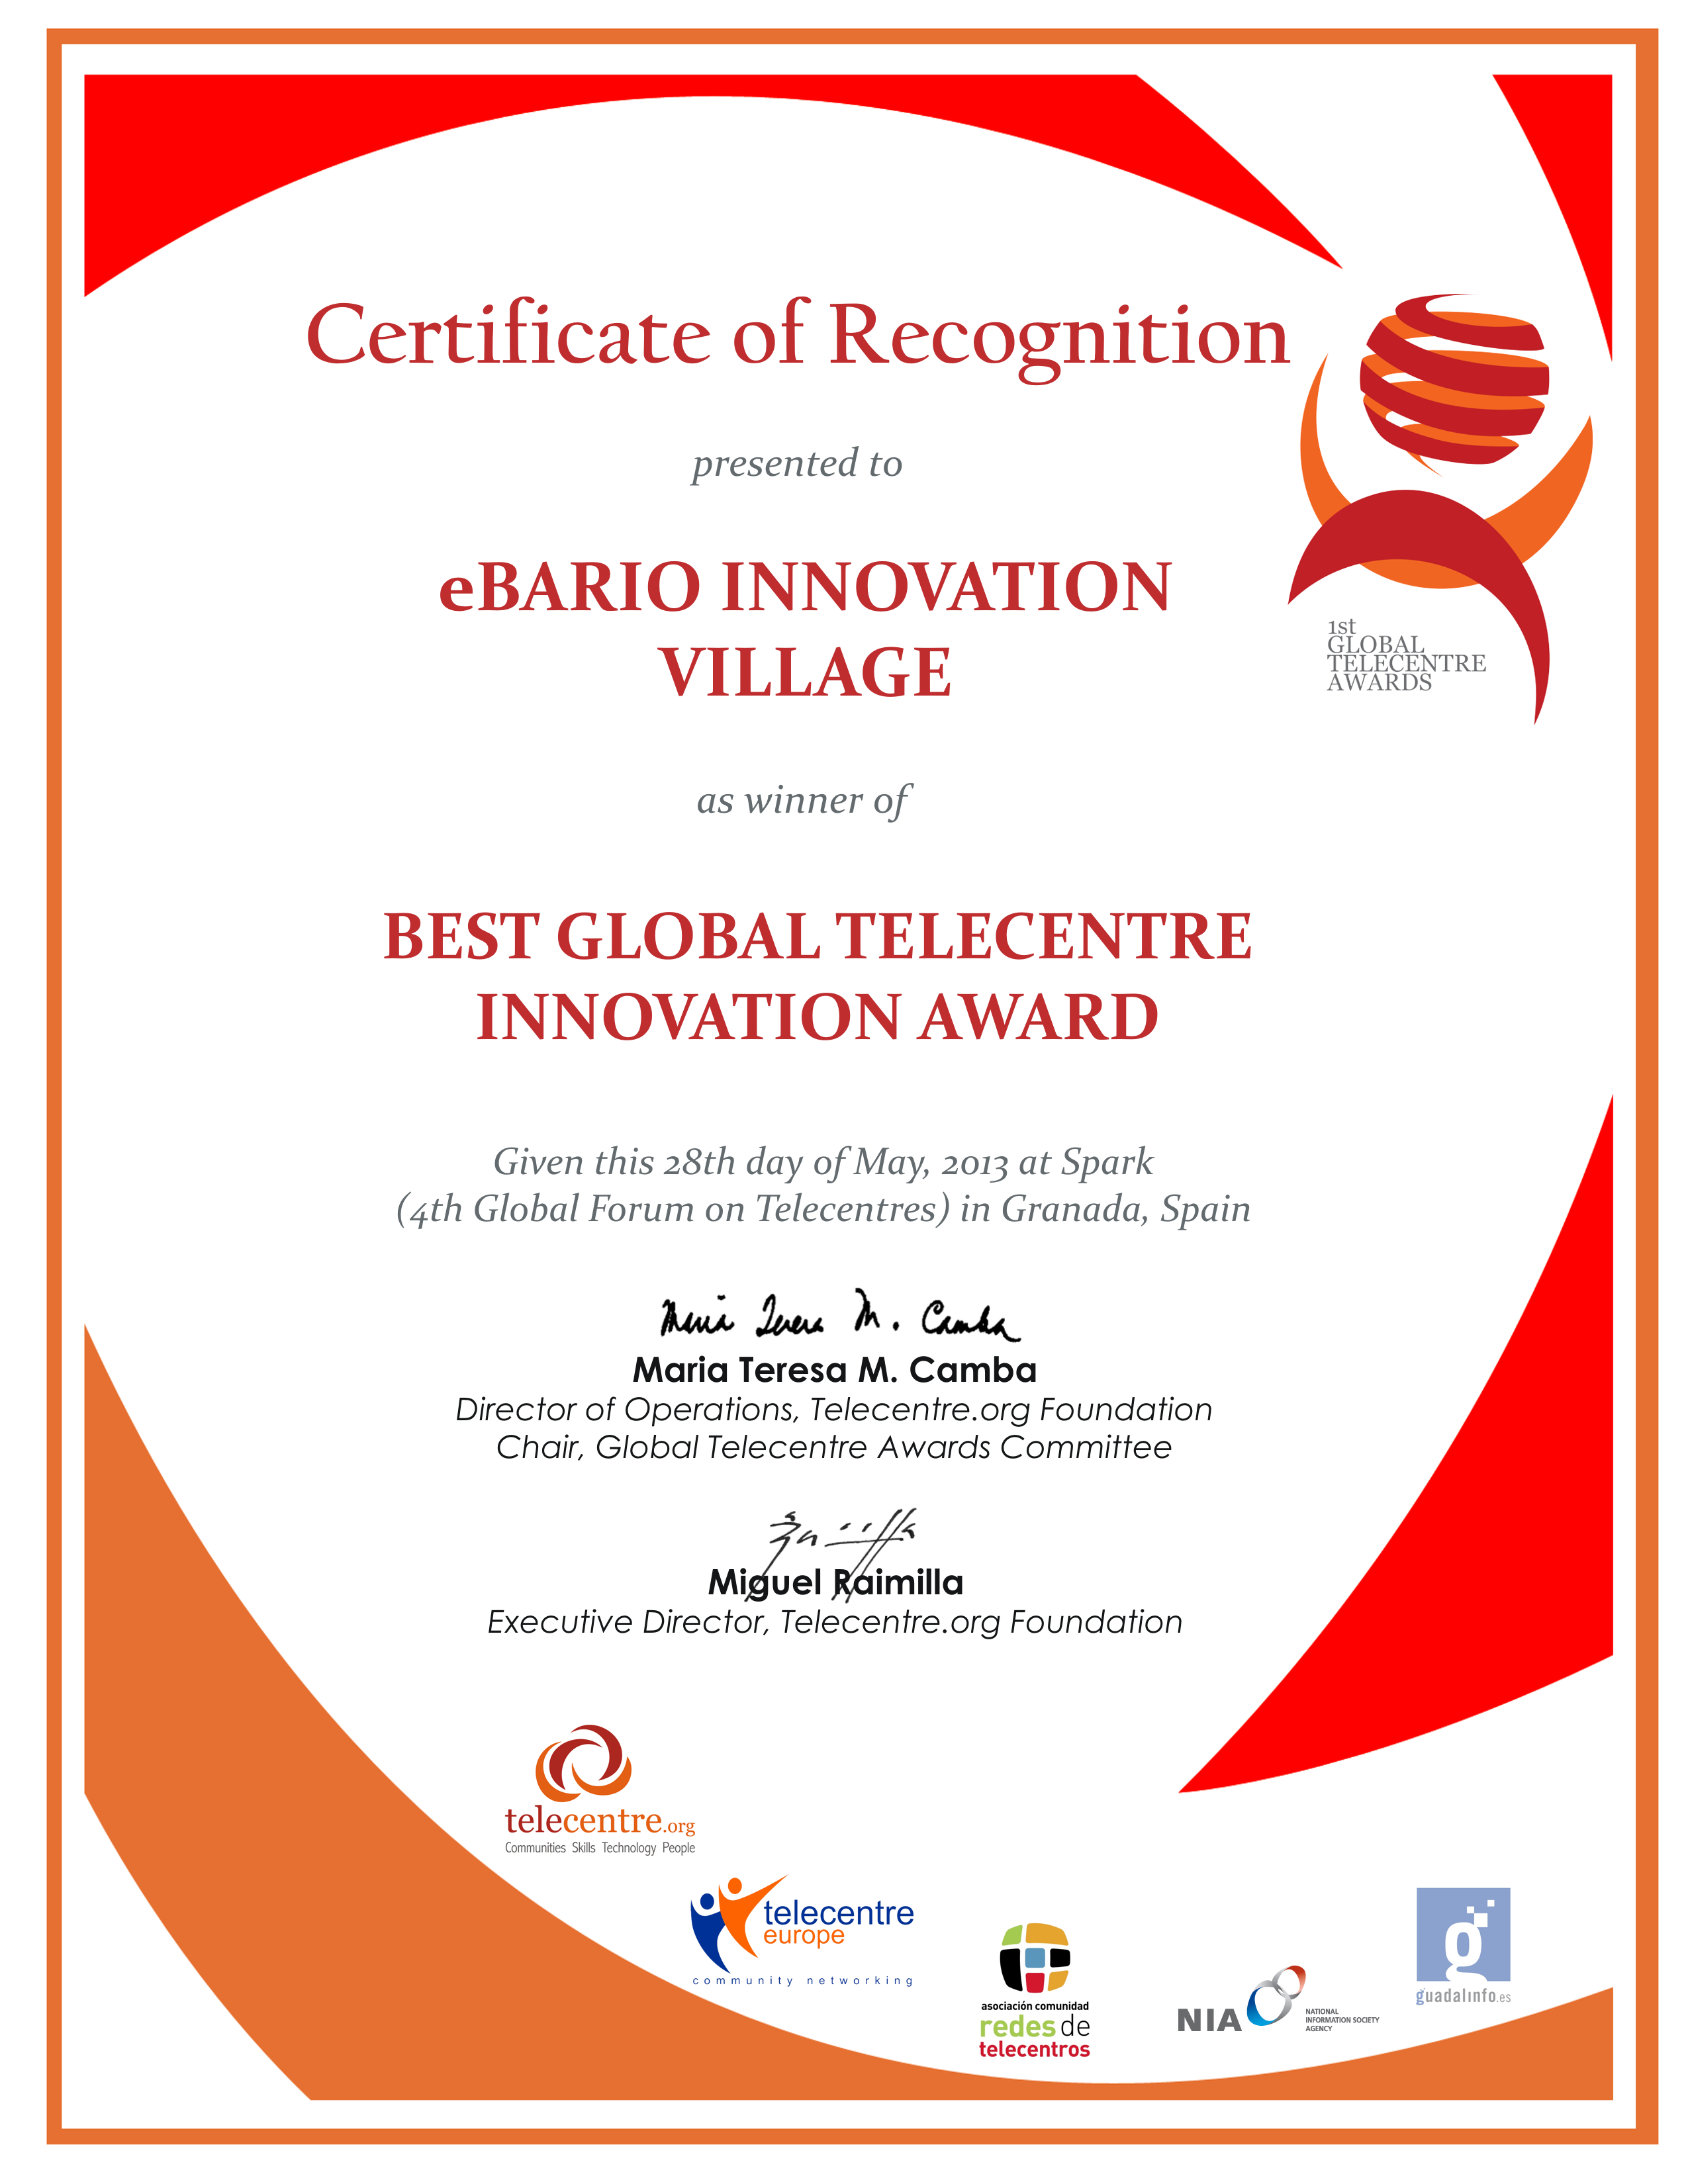 Certificate Of Recognition Ebario Innovation Village Best Global